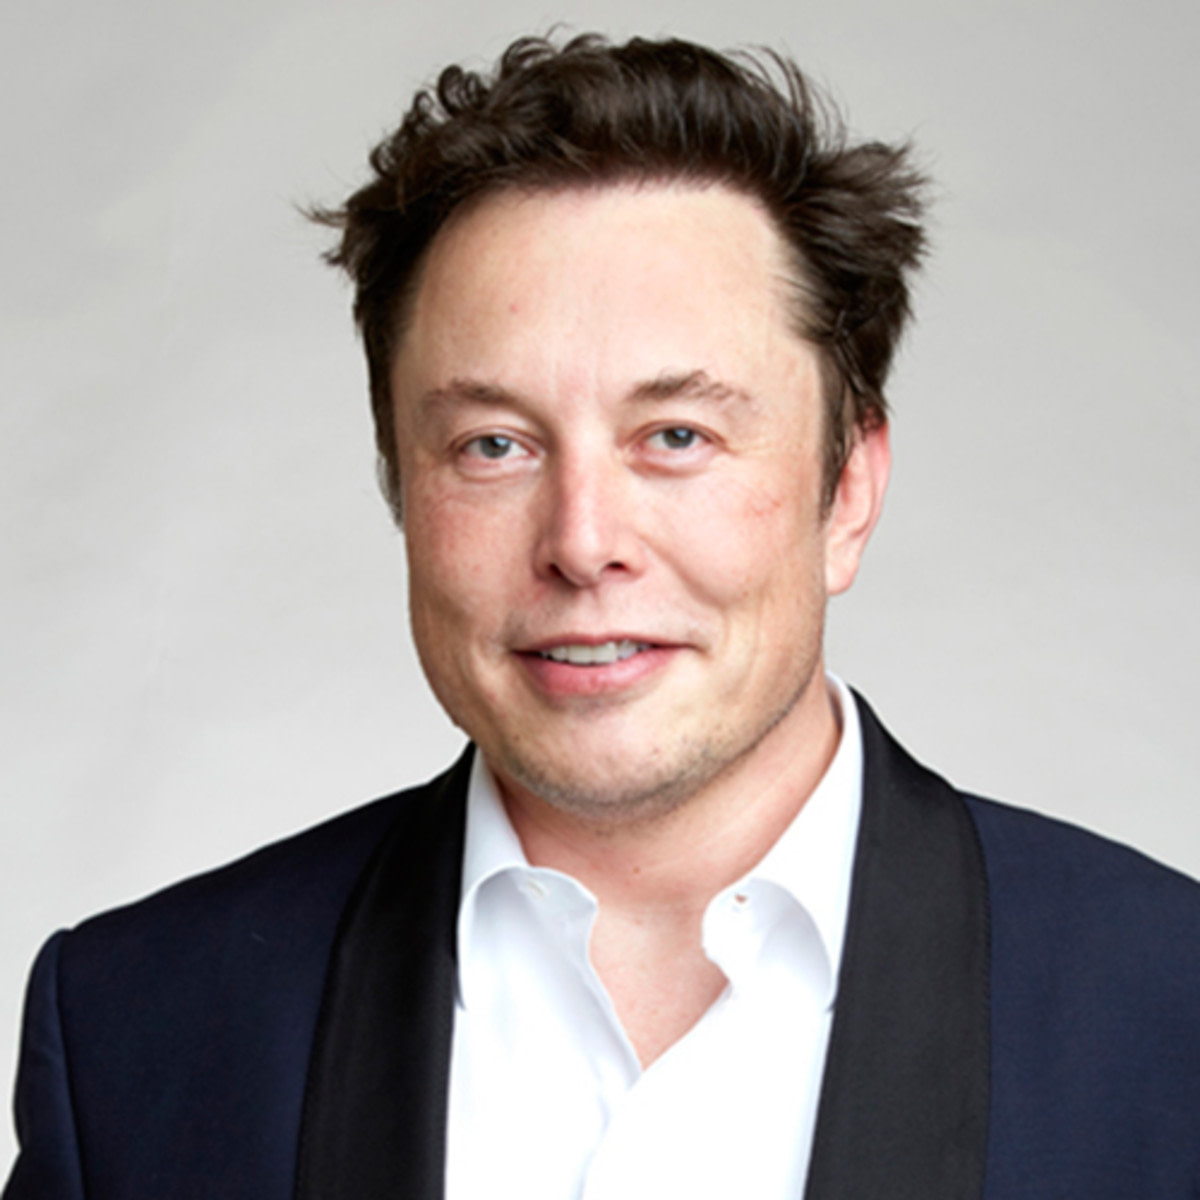 Reactions As Federal Government Of Nigeria Requests For Free Ventilators From Elon Musk – Guardian